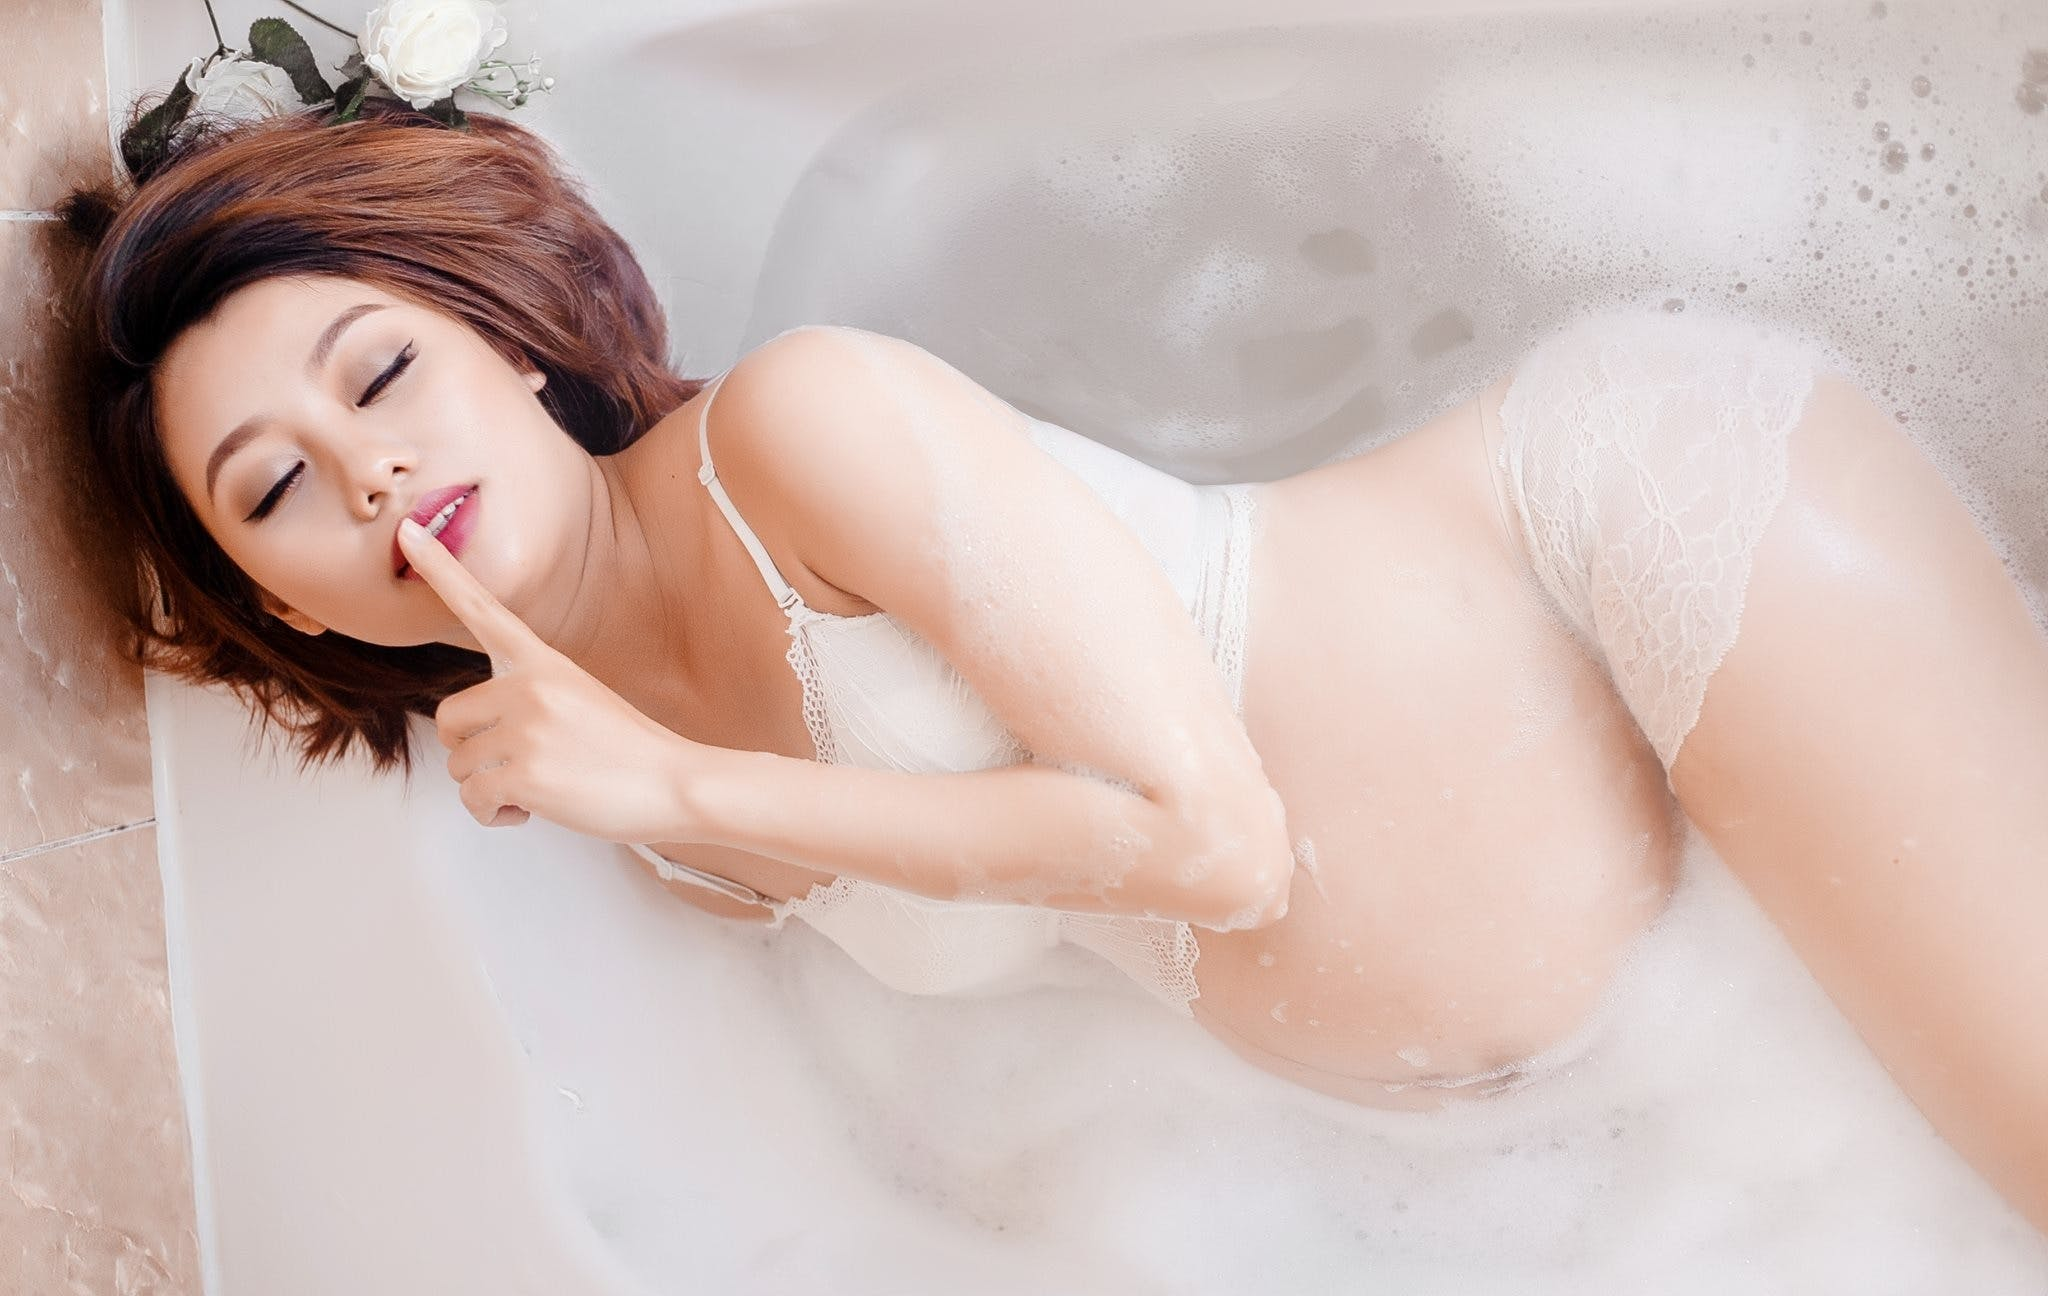 Pregnant Woman Lying on Bathtub